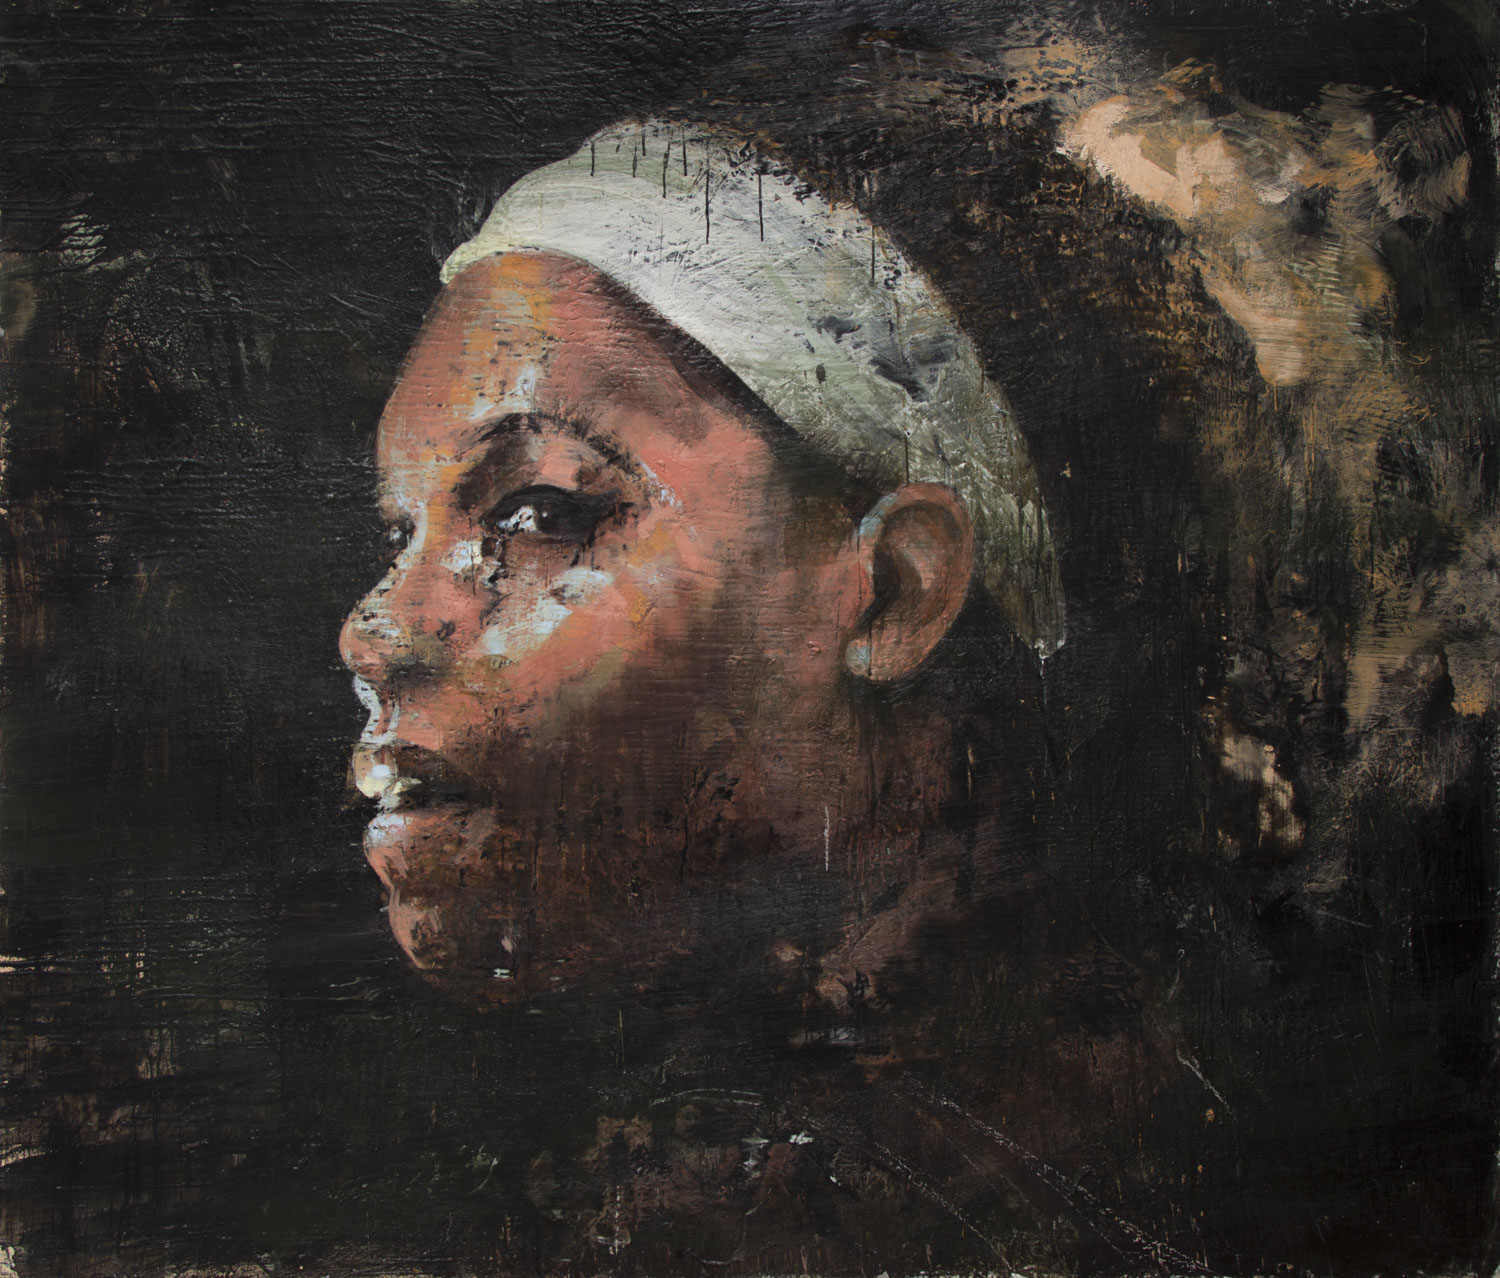 Serena Williams, 2012-14, encaustic on canvas, 72 x 84 inches